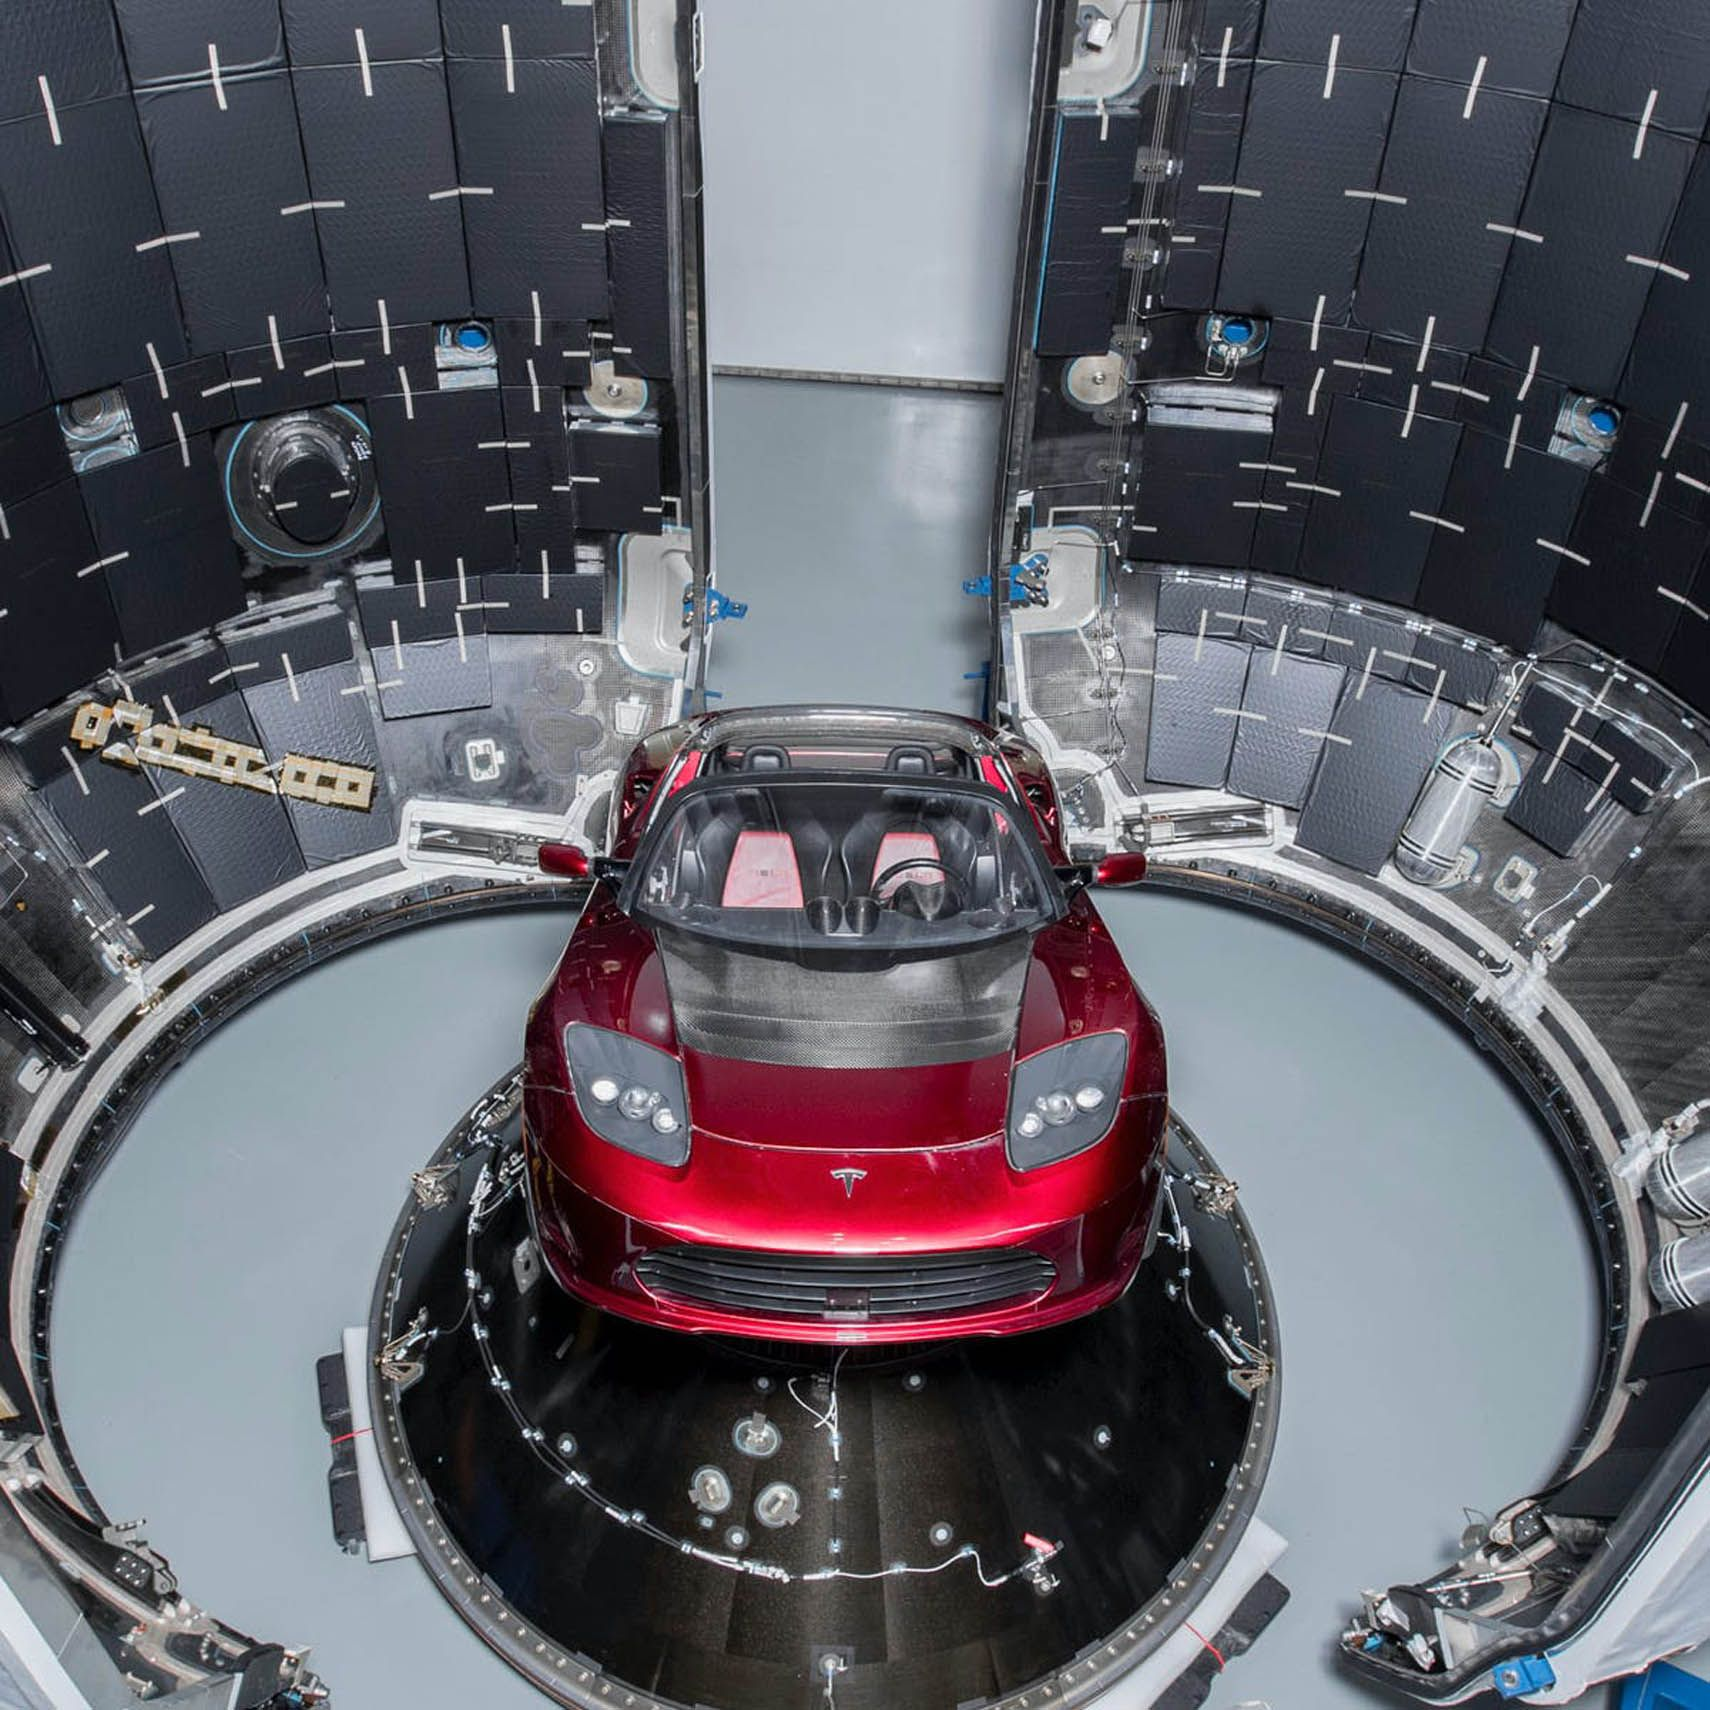 Tesla Needs To Keep Innovating Before These Companies Overtake It